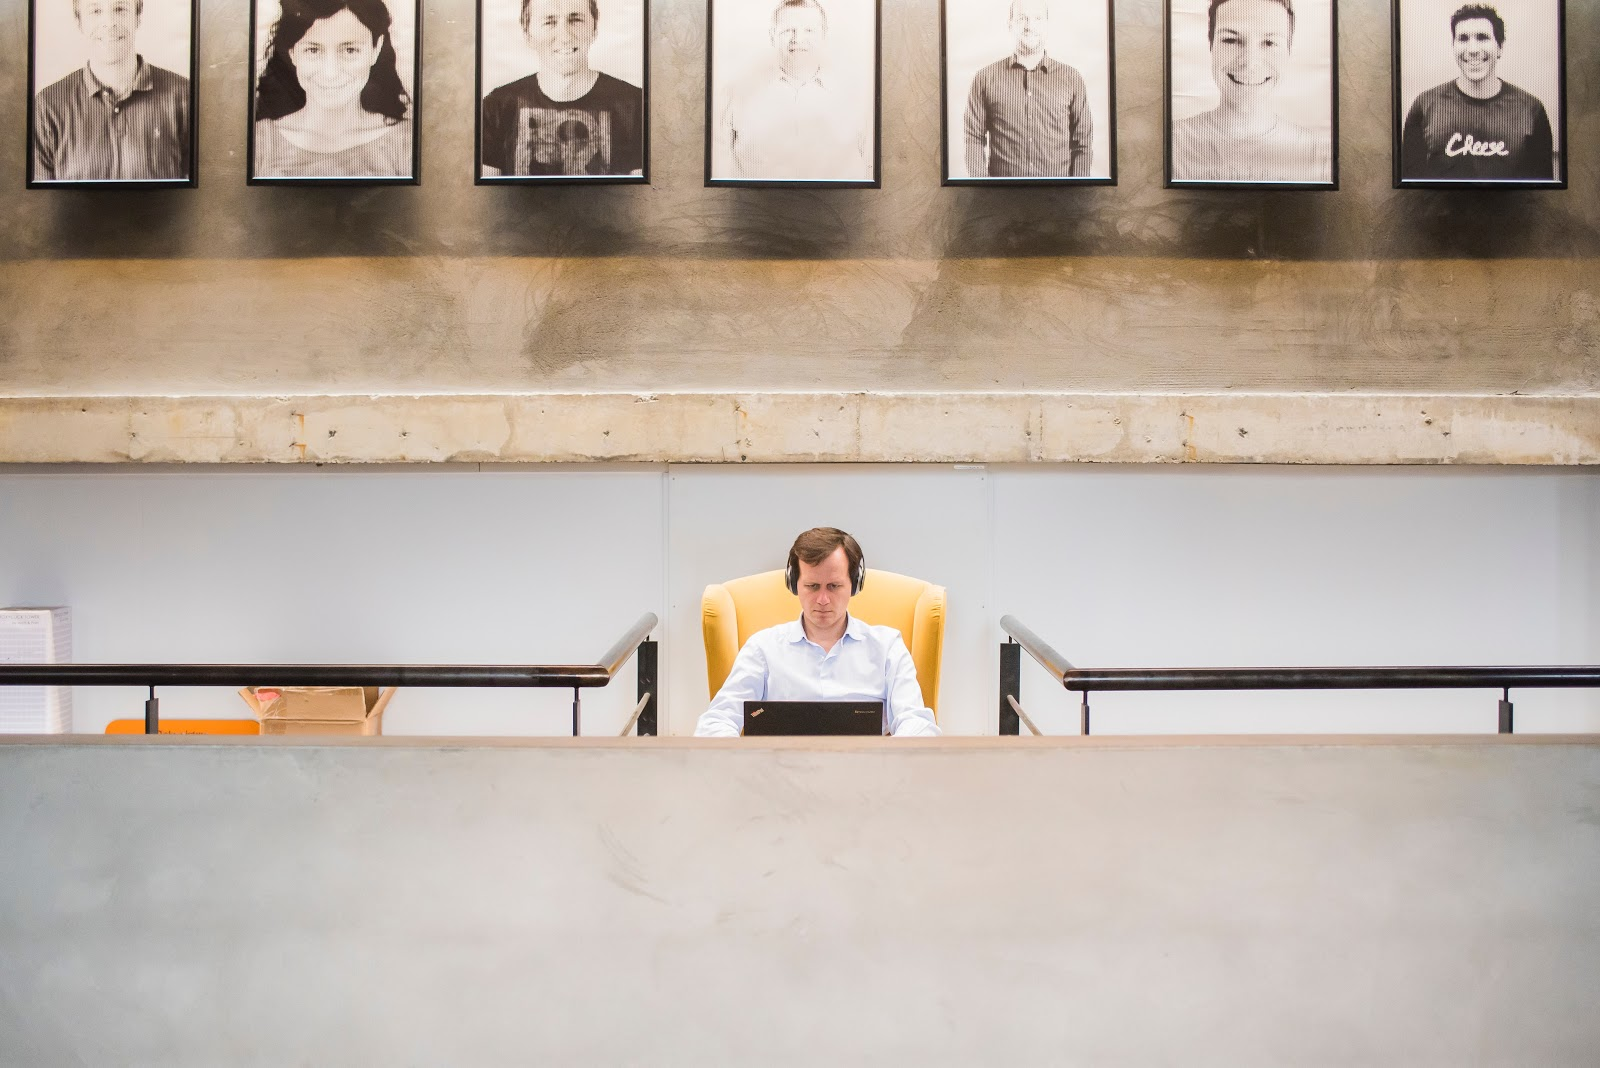 man alone at the table, pictures behind him. Helpdesk center